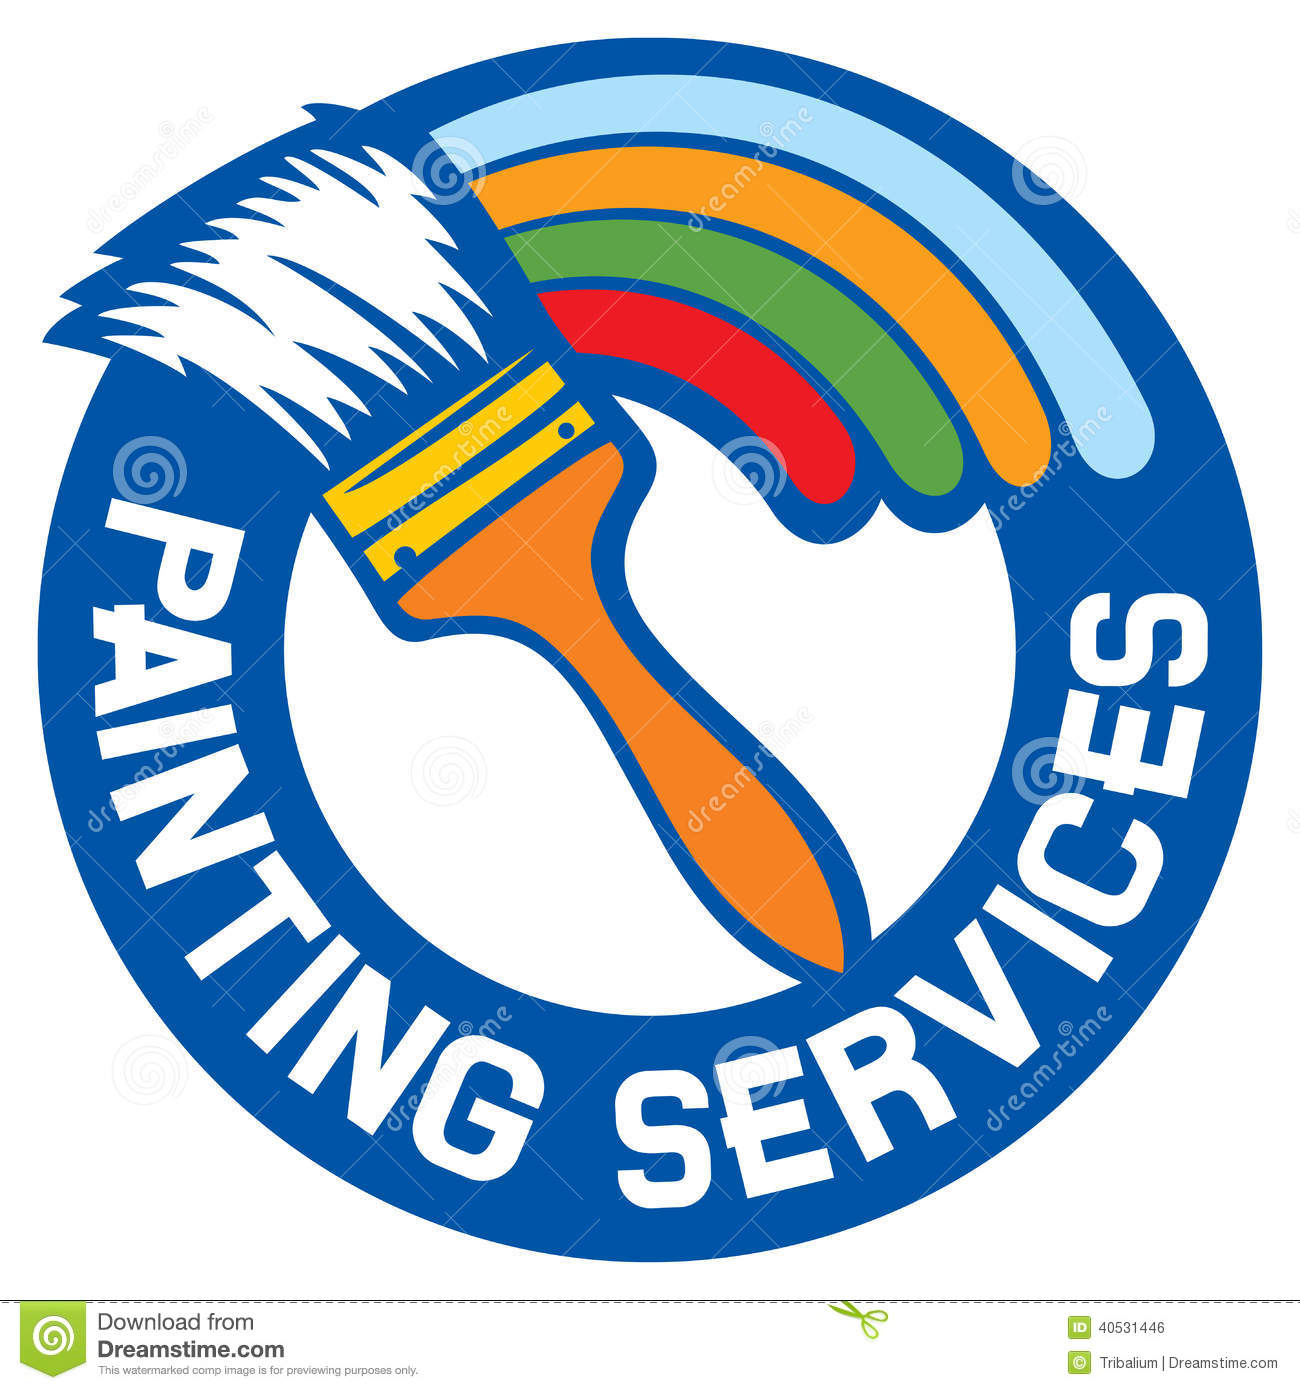 Painting Services Stock Vector - Image: 40531446